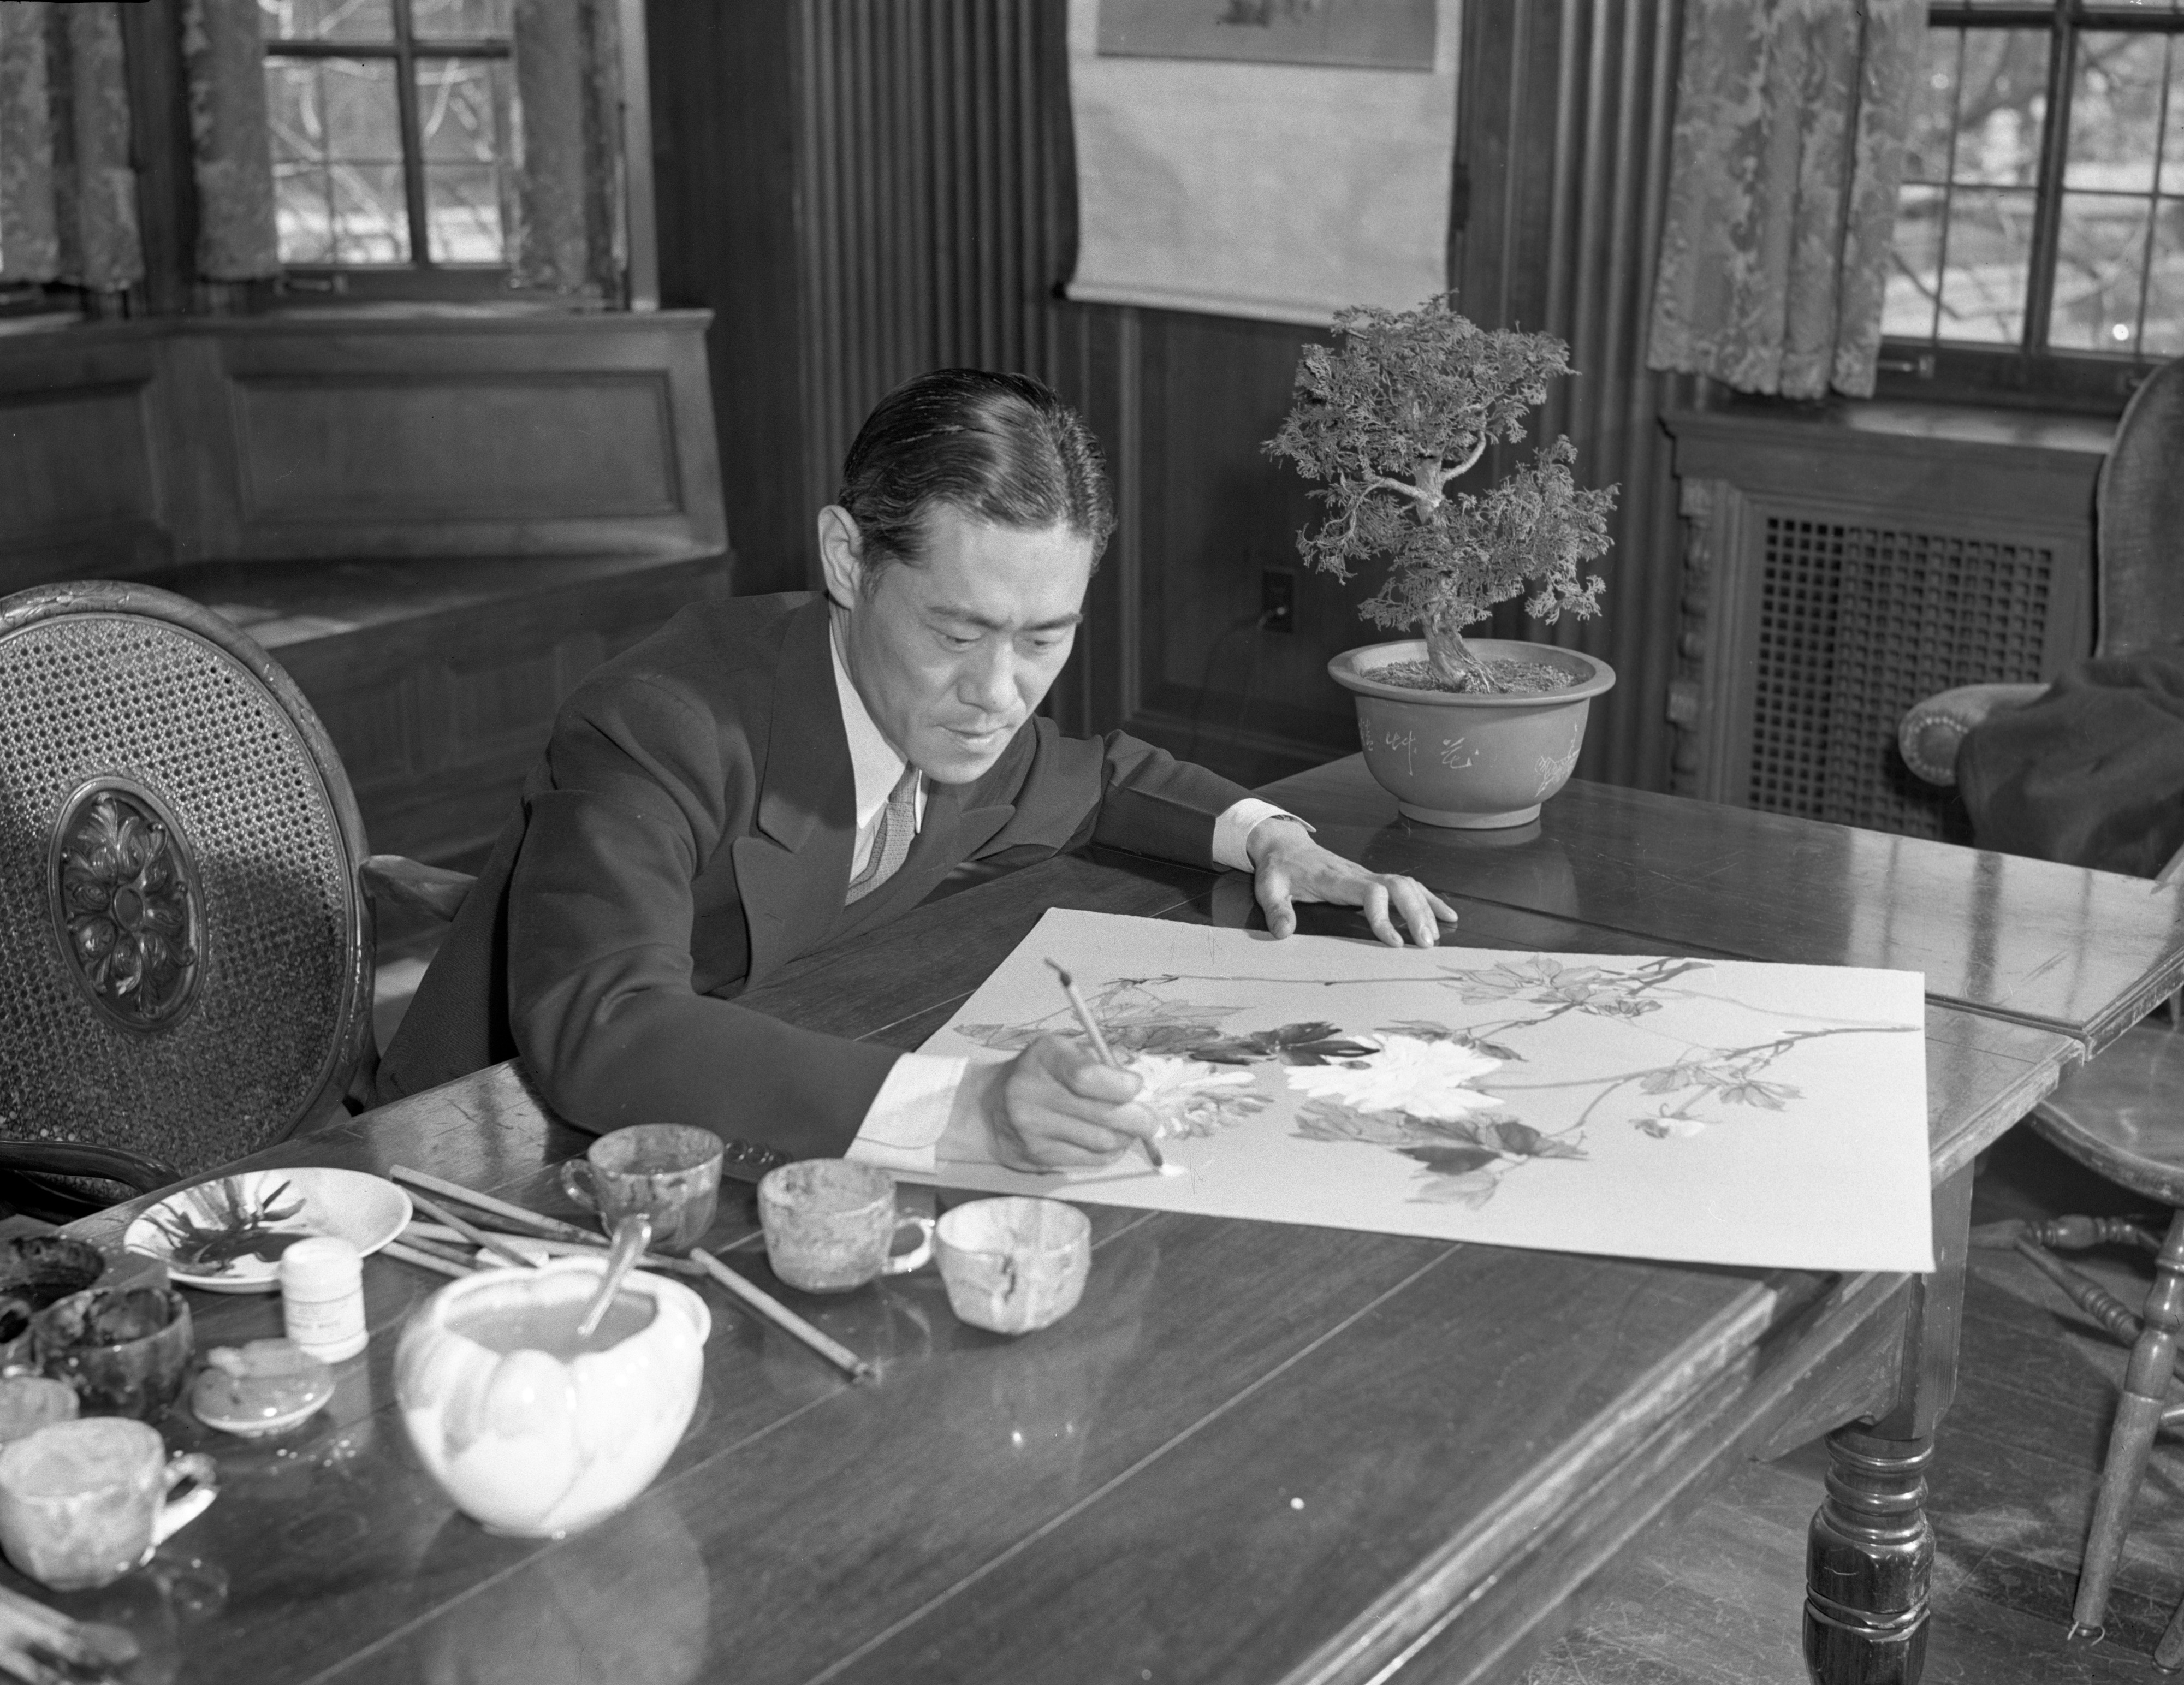 Prof. Chang Shu-Chi Completes A Painting at the Michigan League, March 1943 image